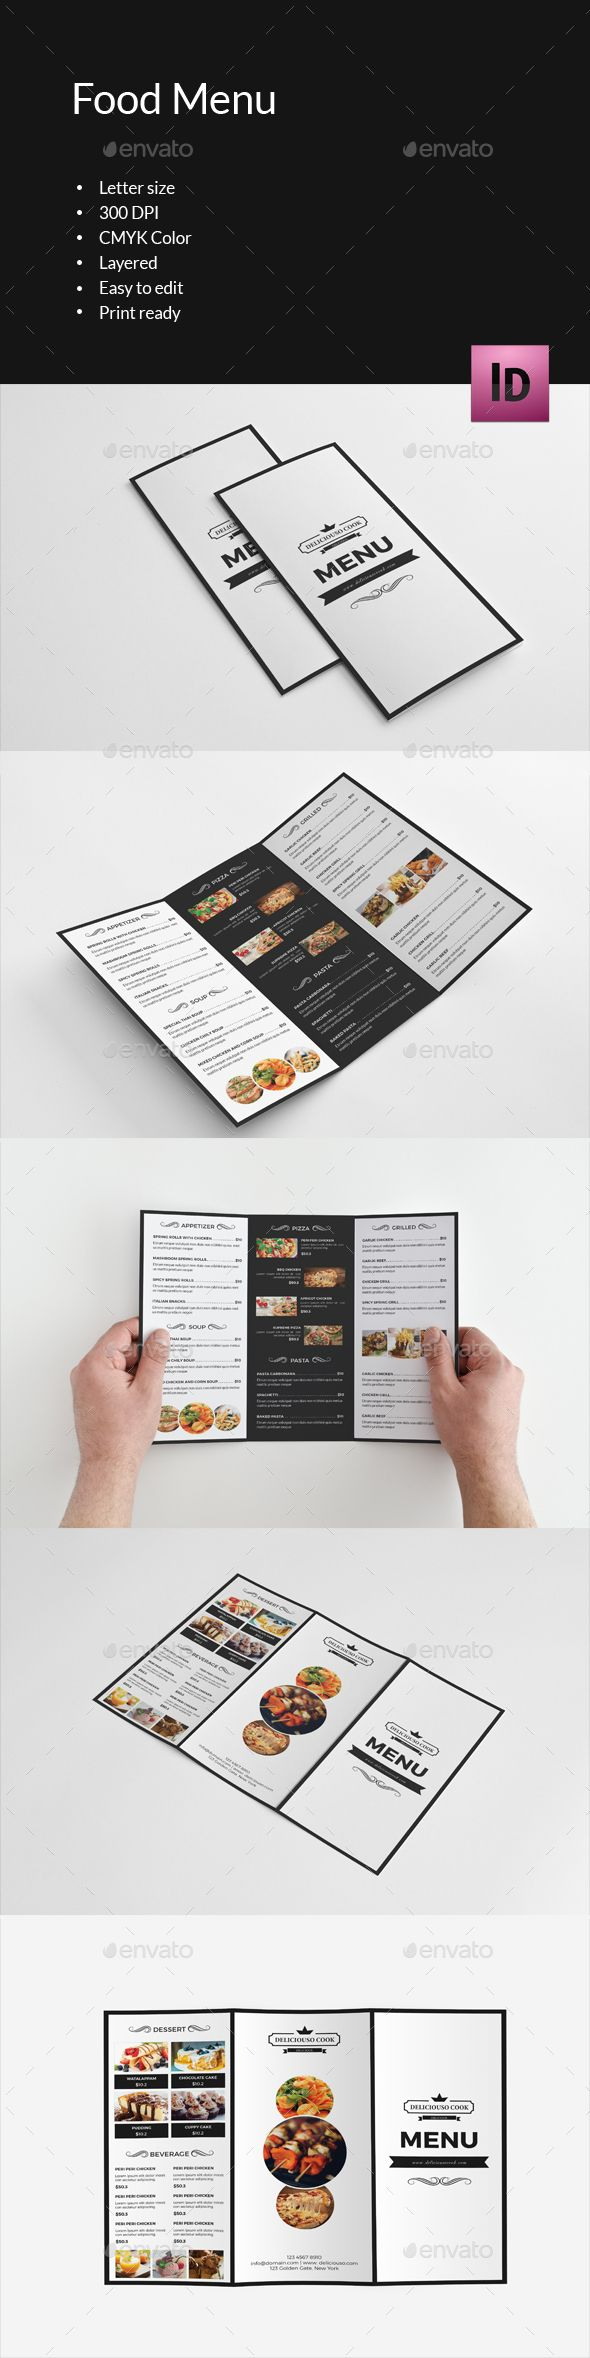 Trifold Brochure for Food Menu Template InDesign INDD. Download here: https://graphicriver.net/item/trifold-brochure-for-food-menuv289/17600604?ref=ksioks